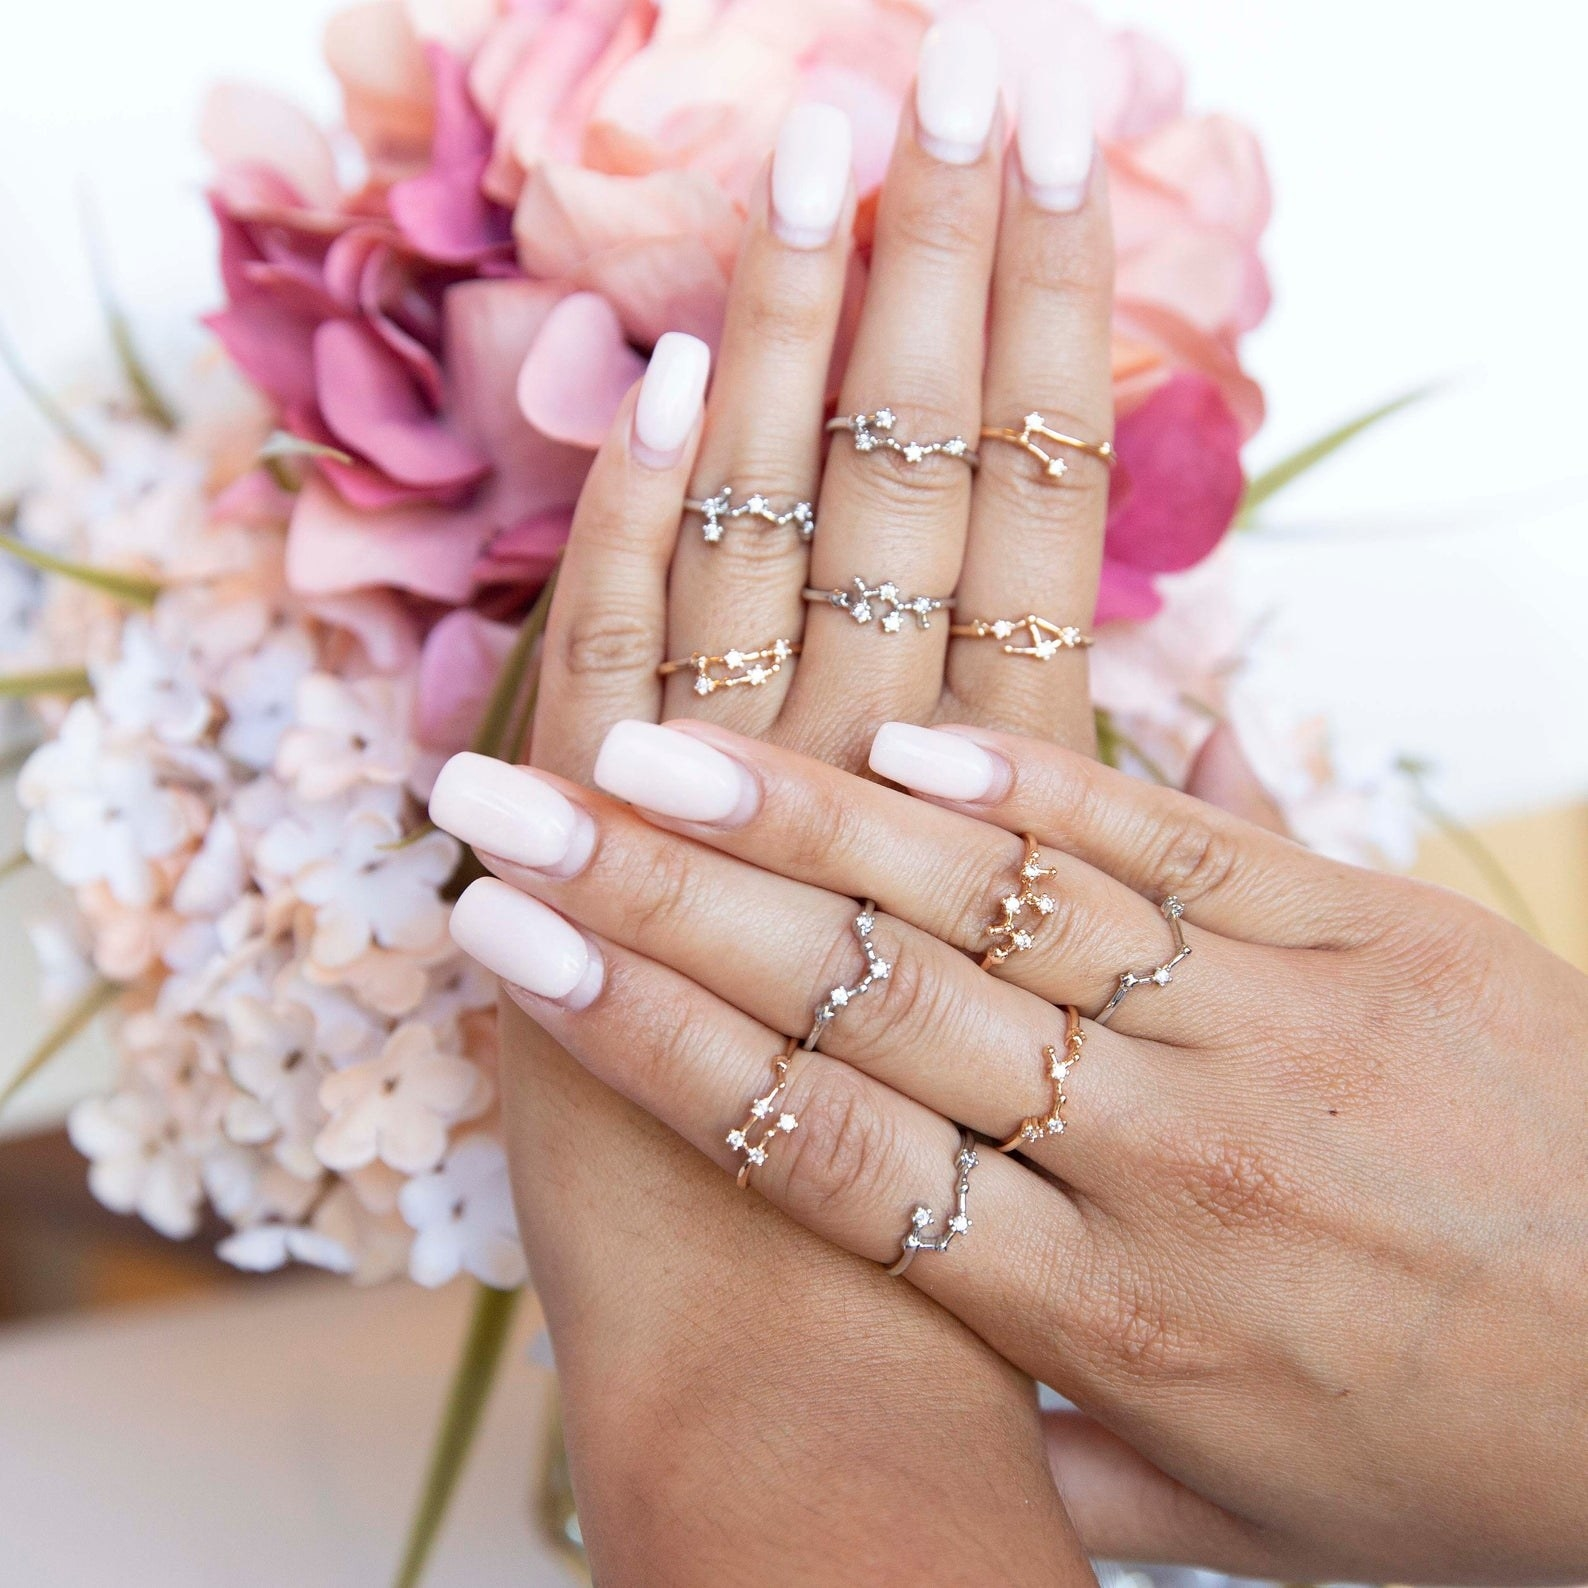 Model's hands with assorted zodiac sign rings in gold in silver on each finger